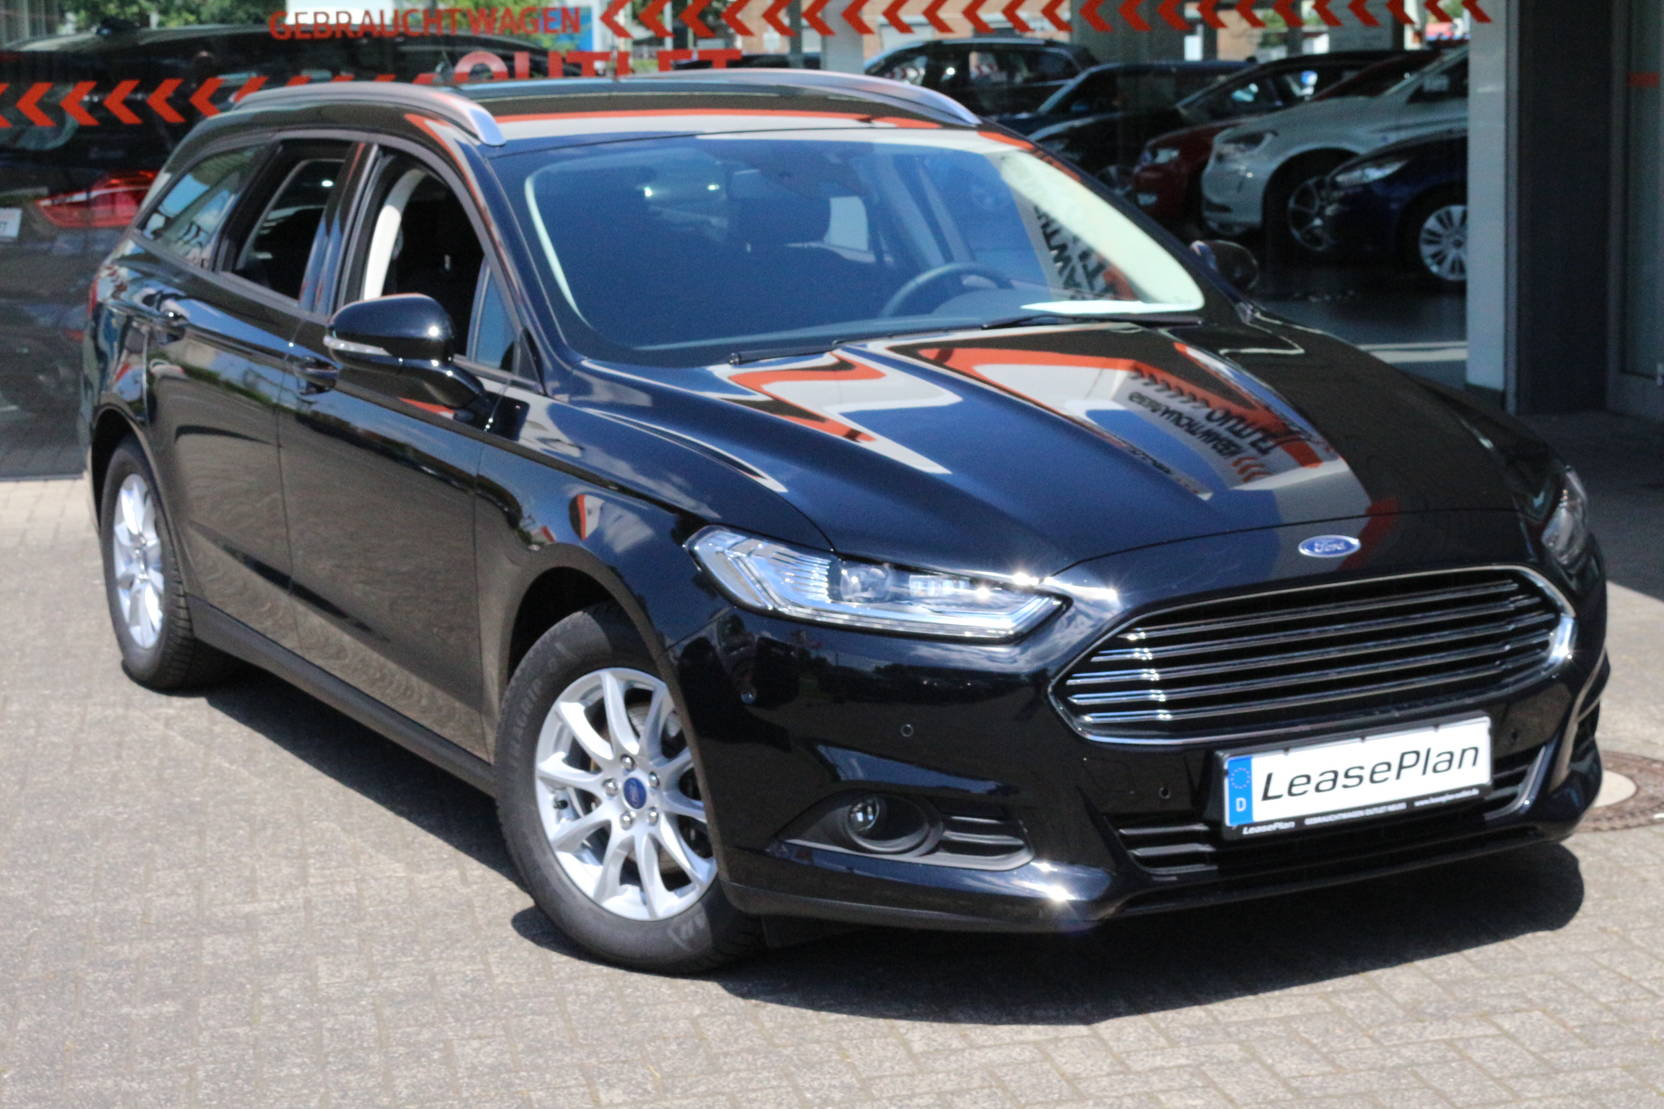 Ford Mondeo Turnier 2.0 TDCi Start-Stop Aut. Business Edition (689040) detail1